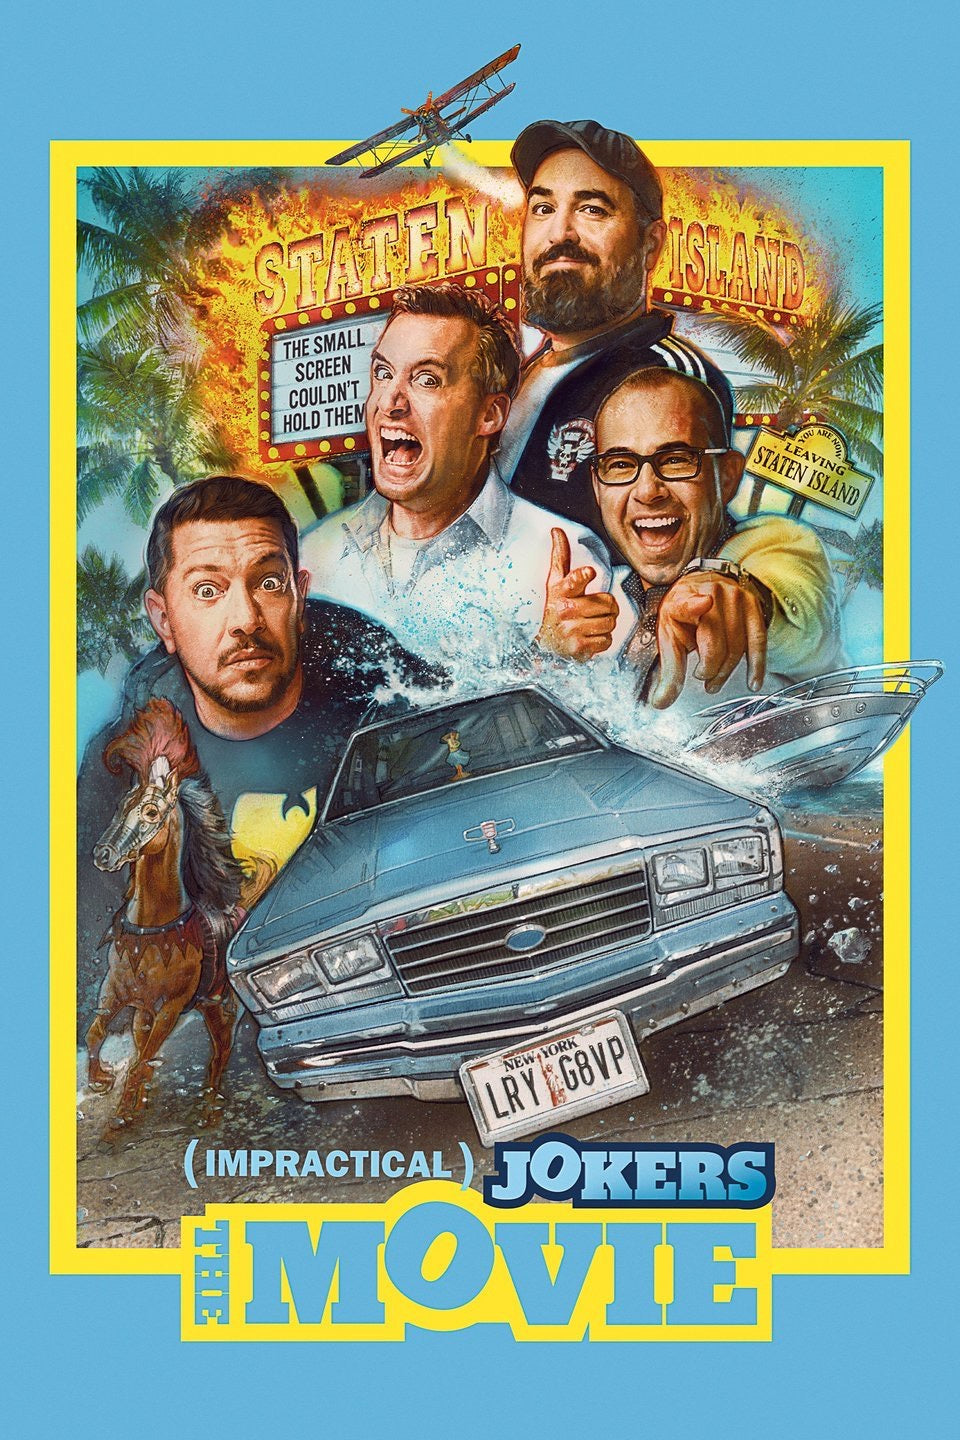 Impractical Jokers: The Movie (2020) Vudu or Movies Anywhere SD code